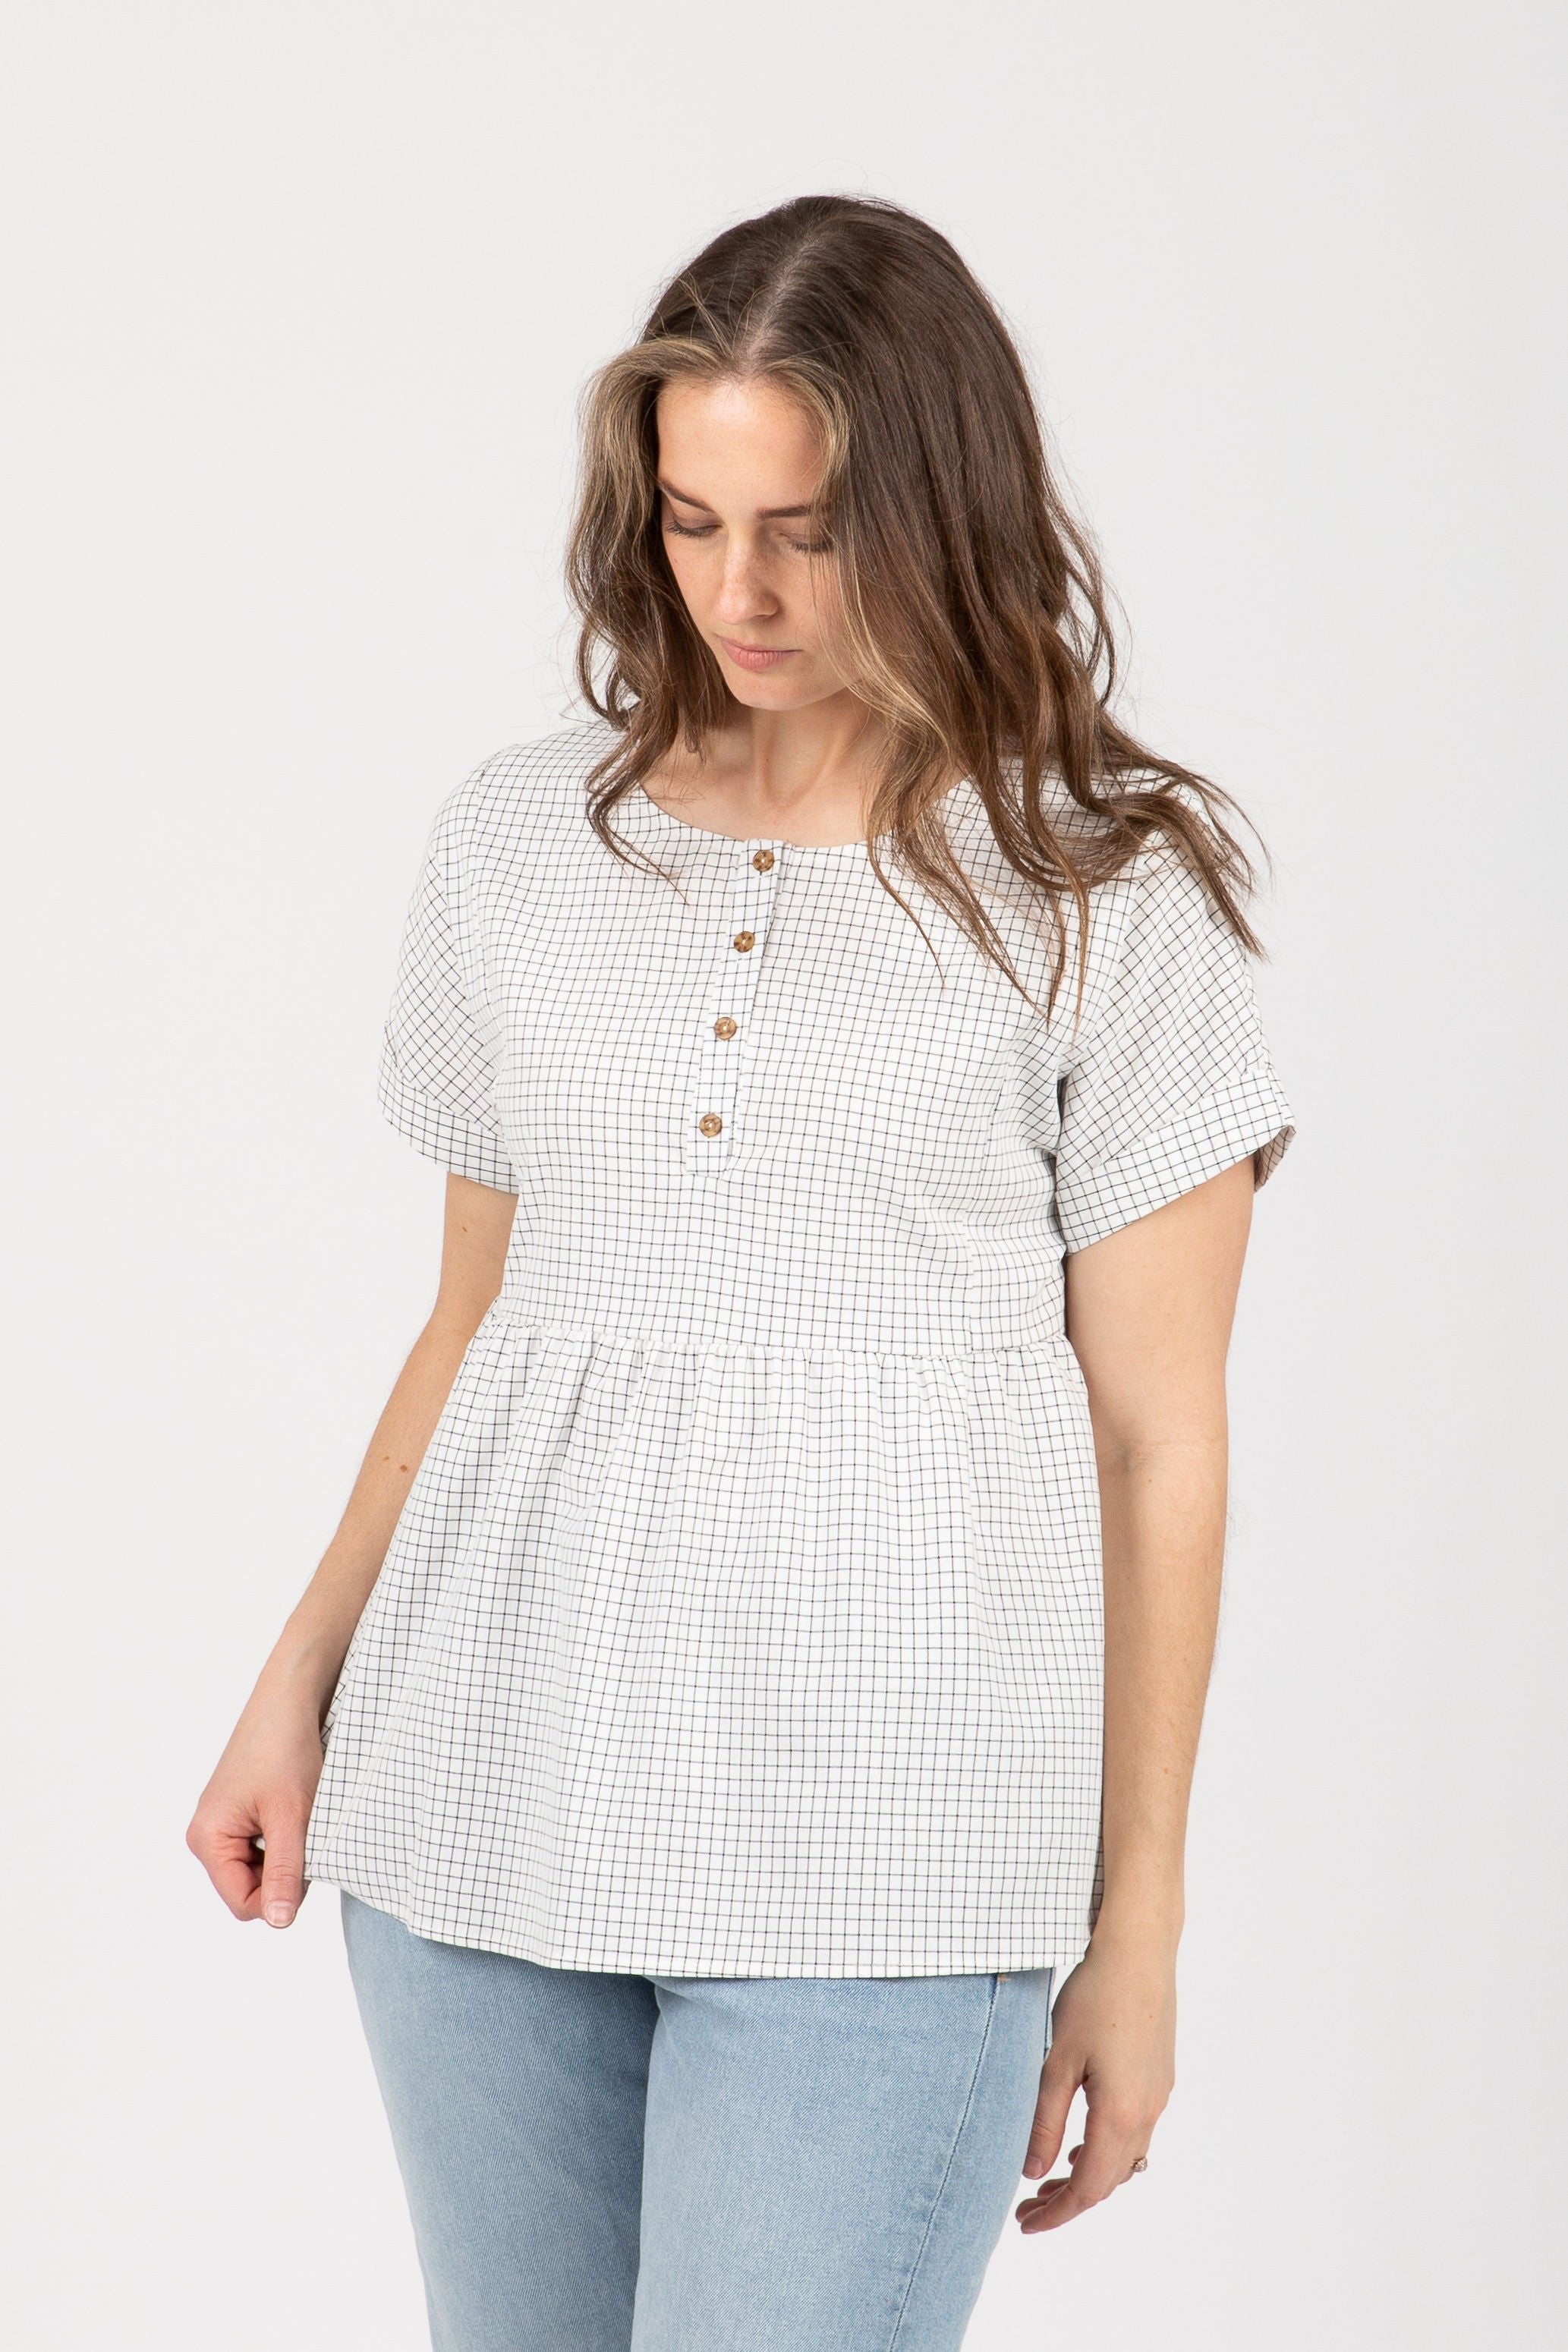 The Heartbeat Grid Button Peplum in White